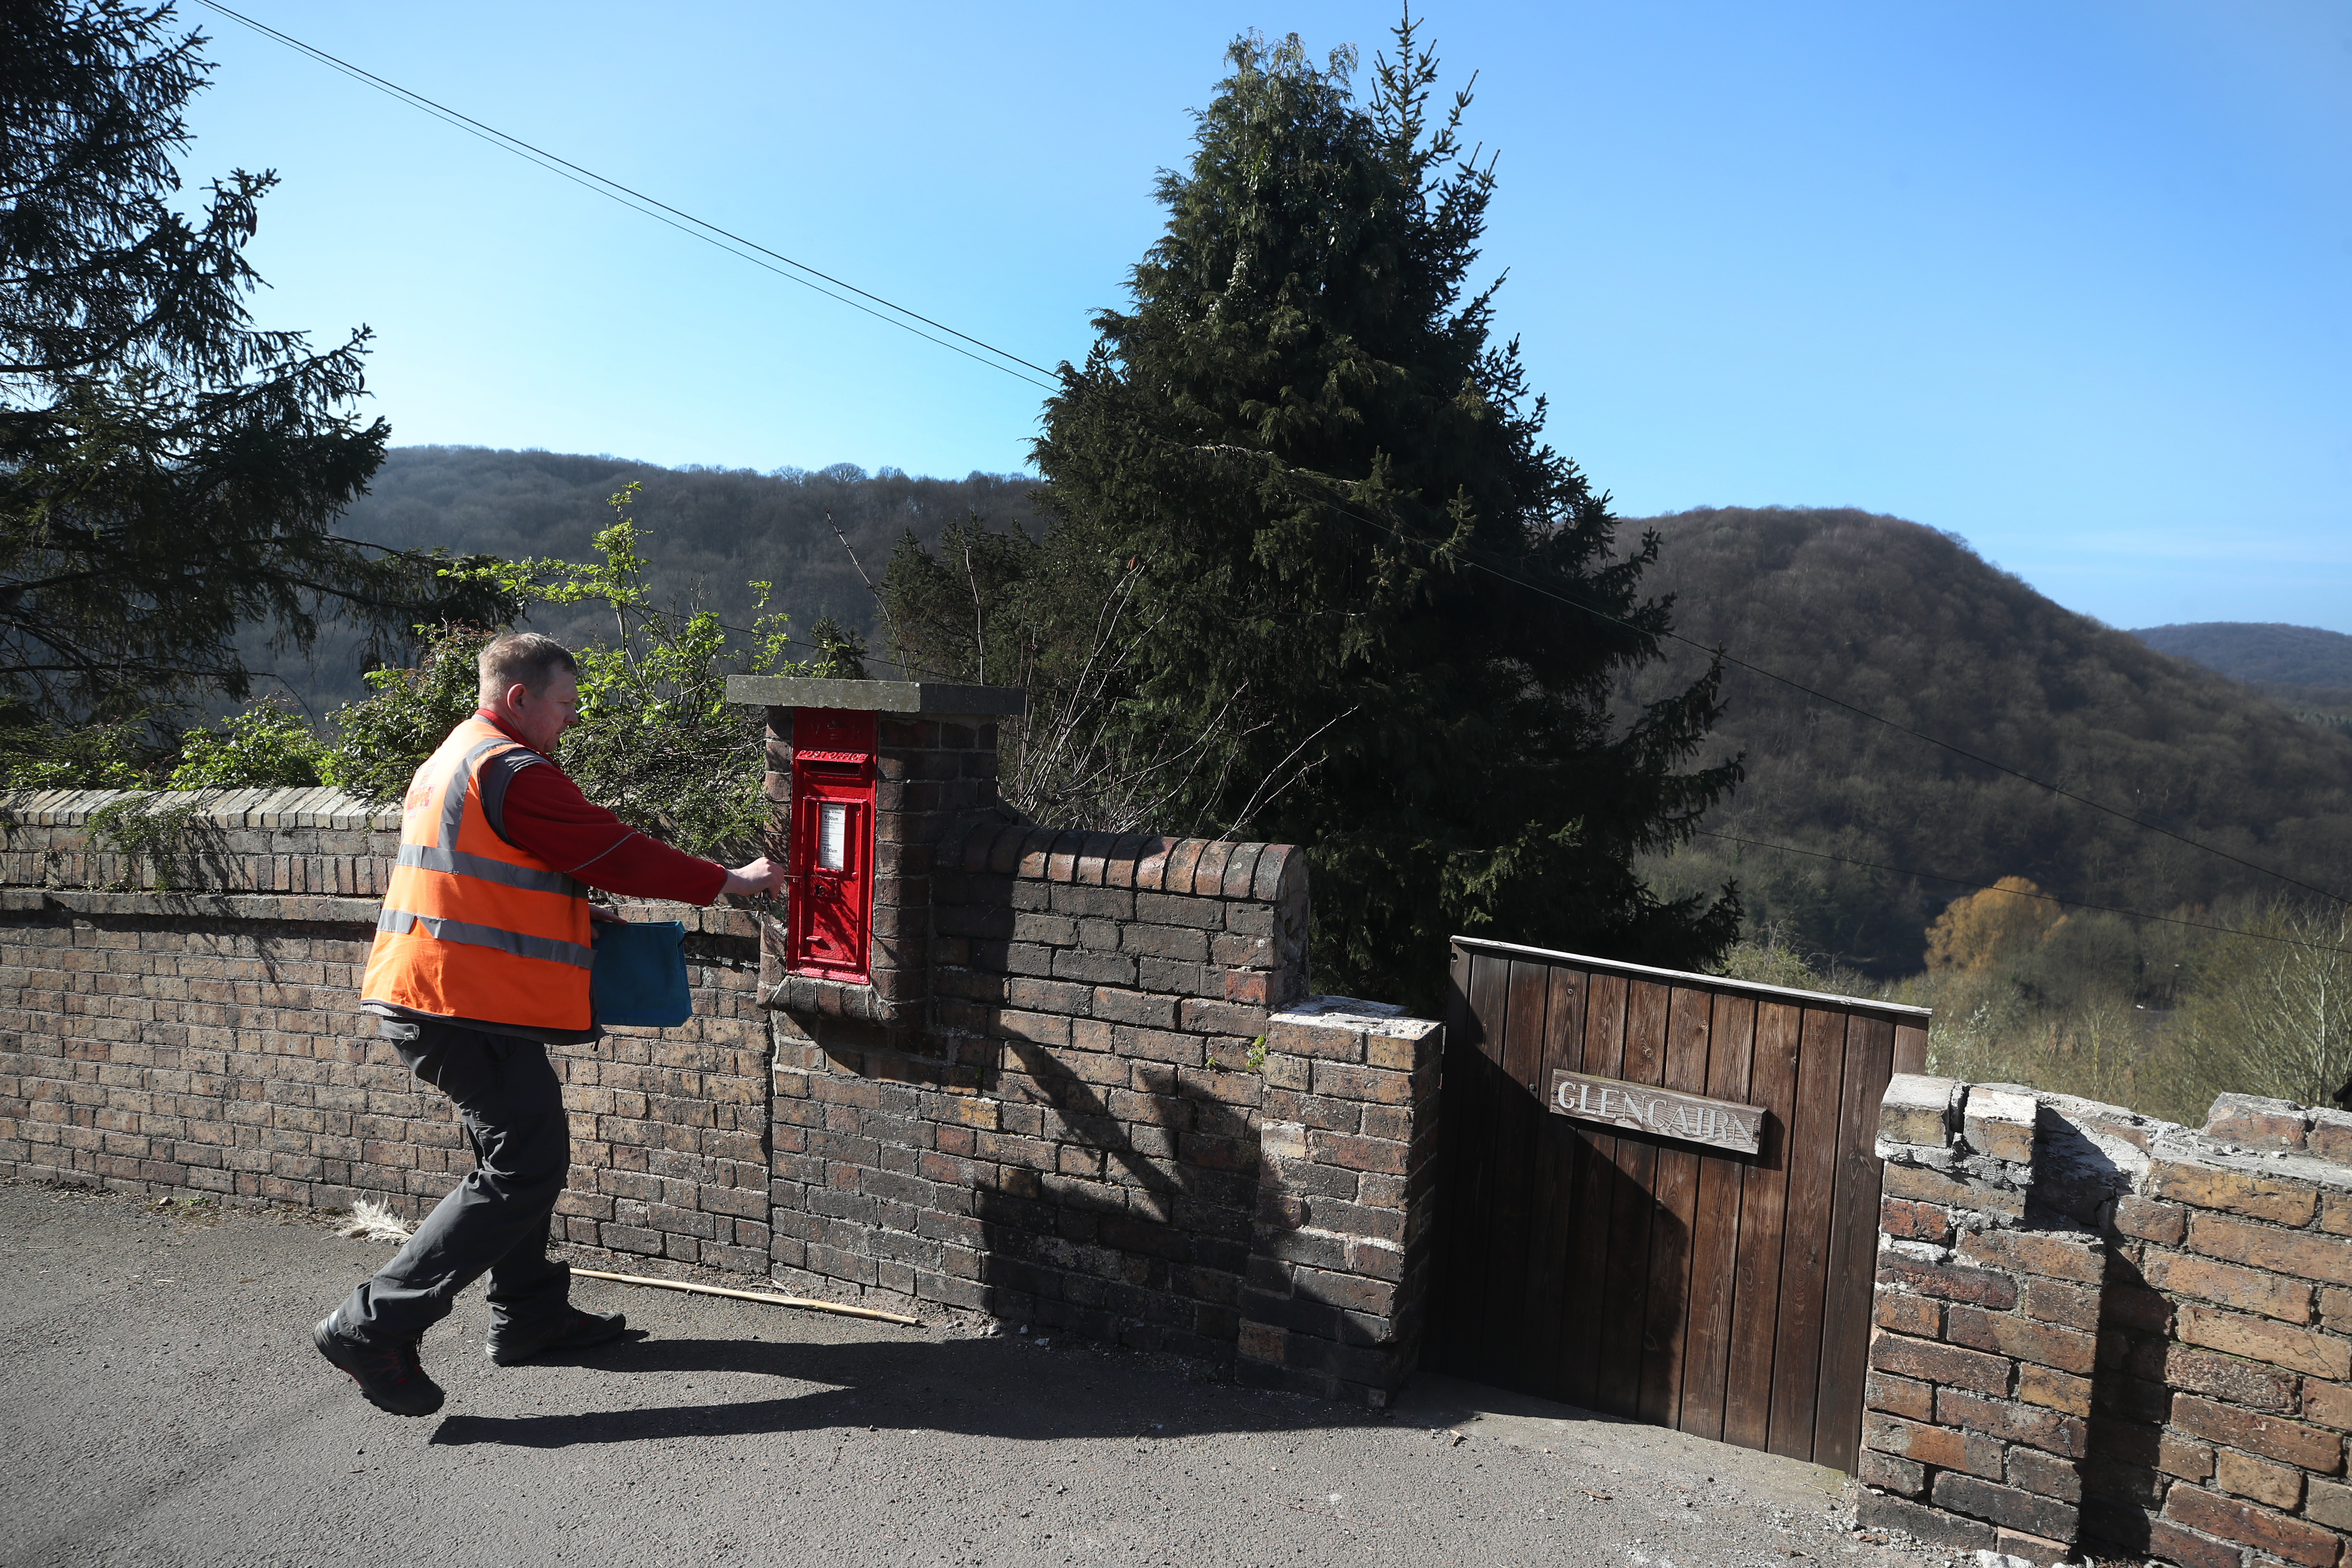 Postal delivery worker Matt delivers mail in the village of Ironbridge in Shropshire, while his customers have to stay at home, after Prime Minister Boris Johnson has put the UK in lockdown to help curb the spread of the coronavirus.